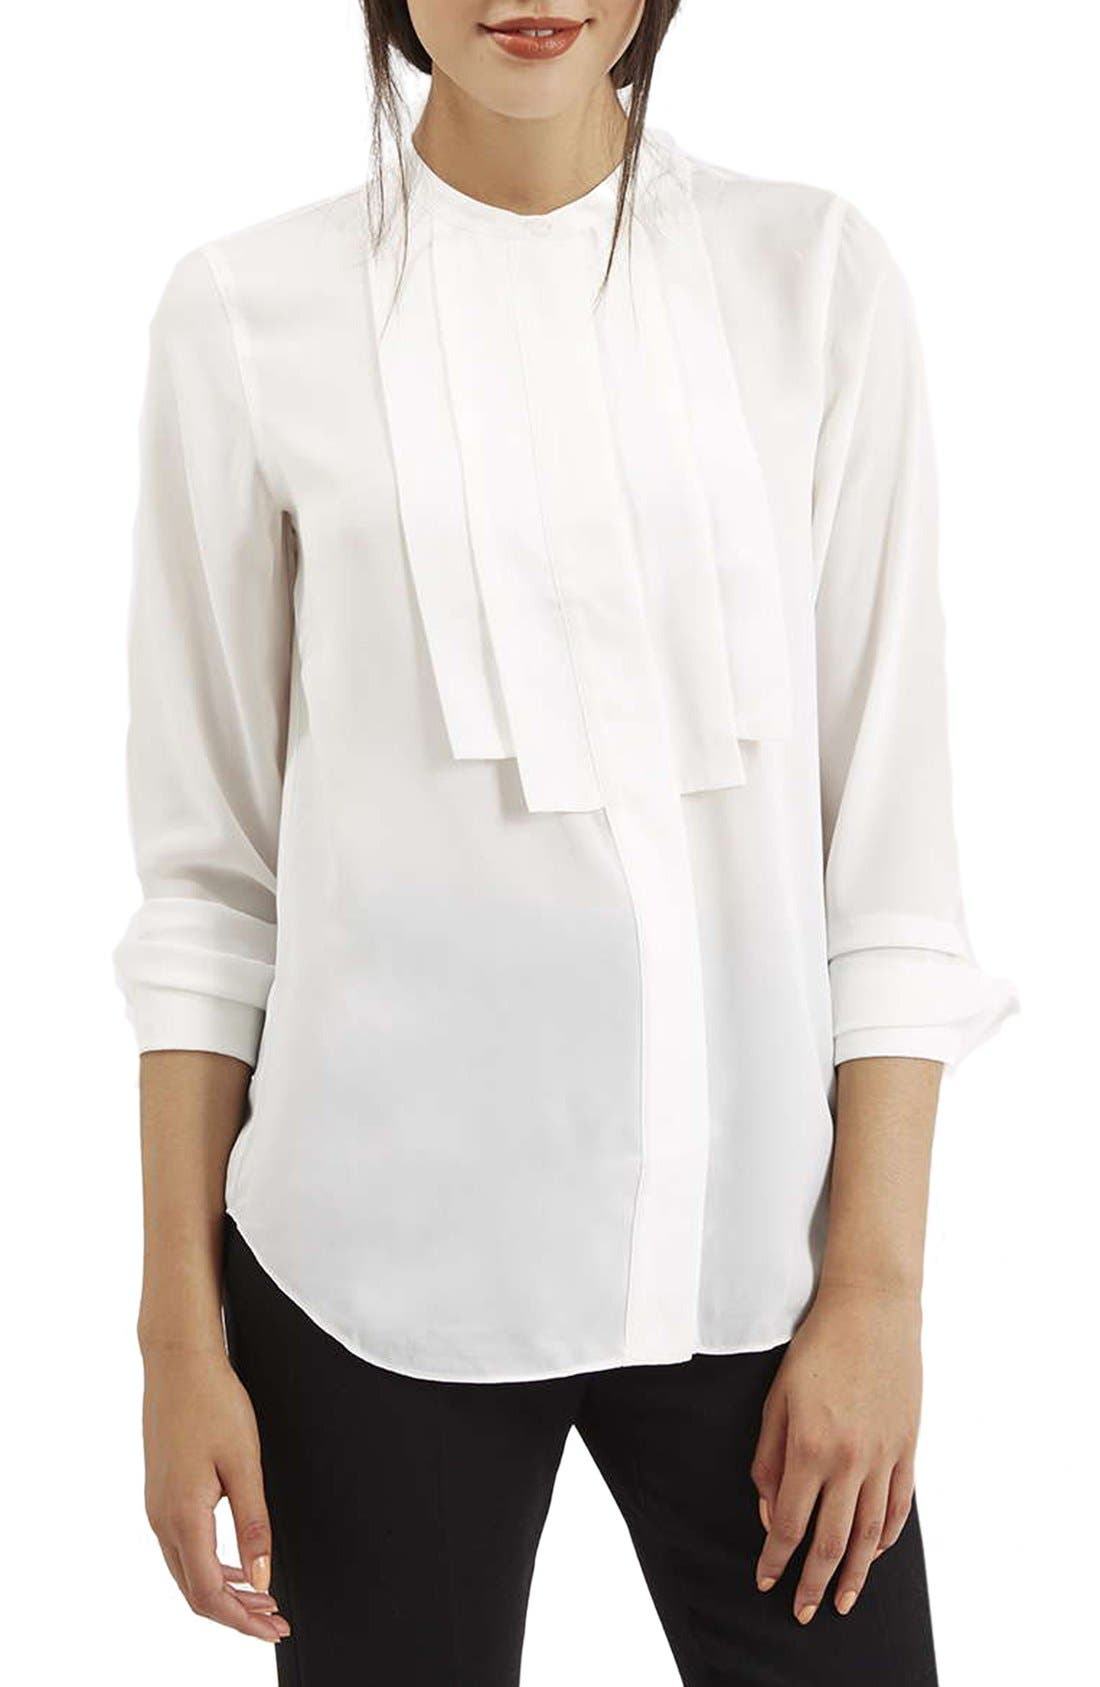 Alternate Image 1 Selected - Topshop Pleated Bib Button Front Shirt